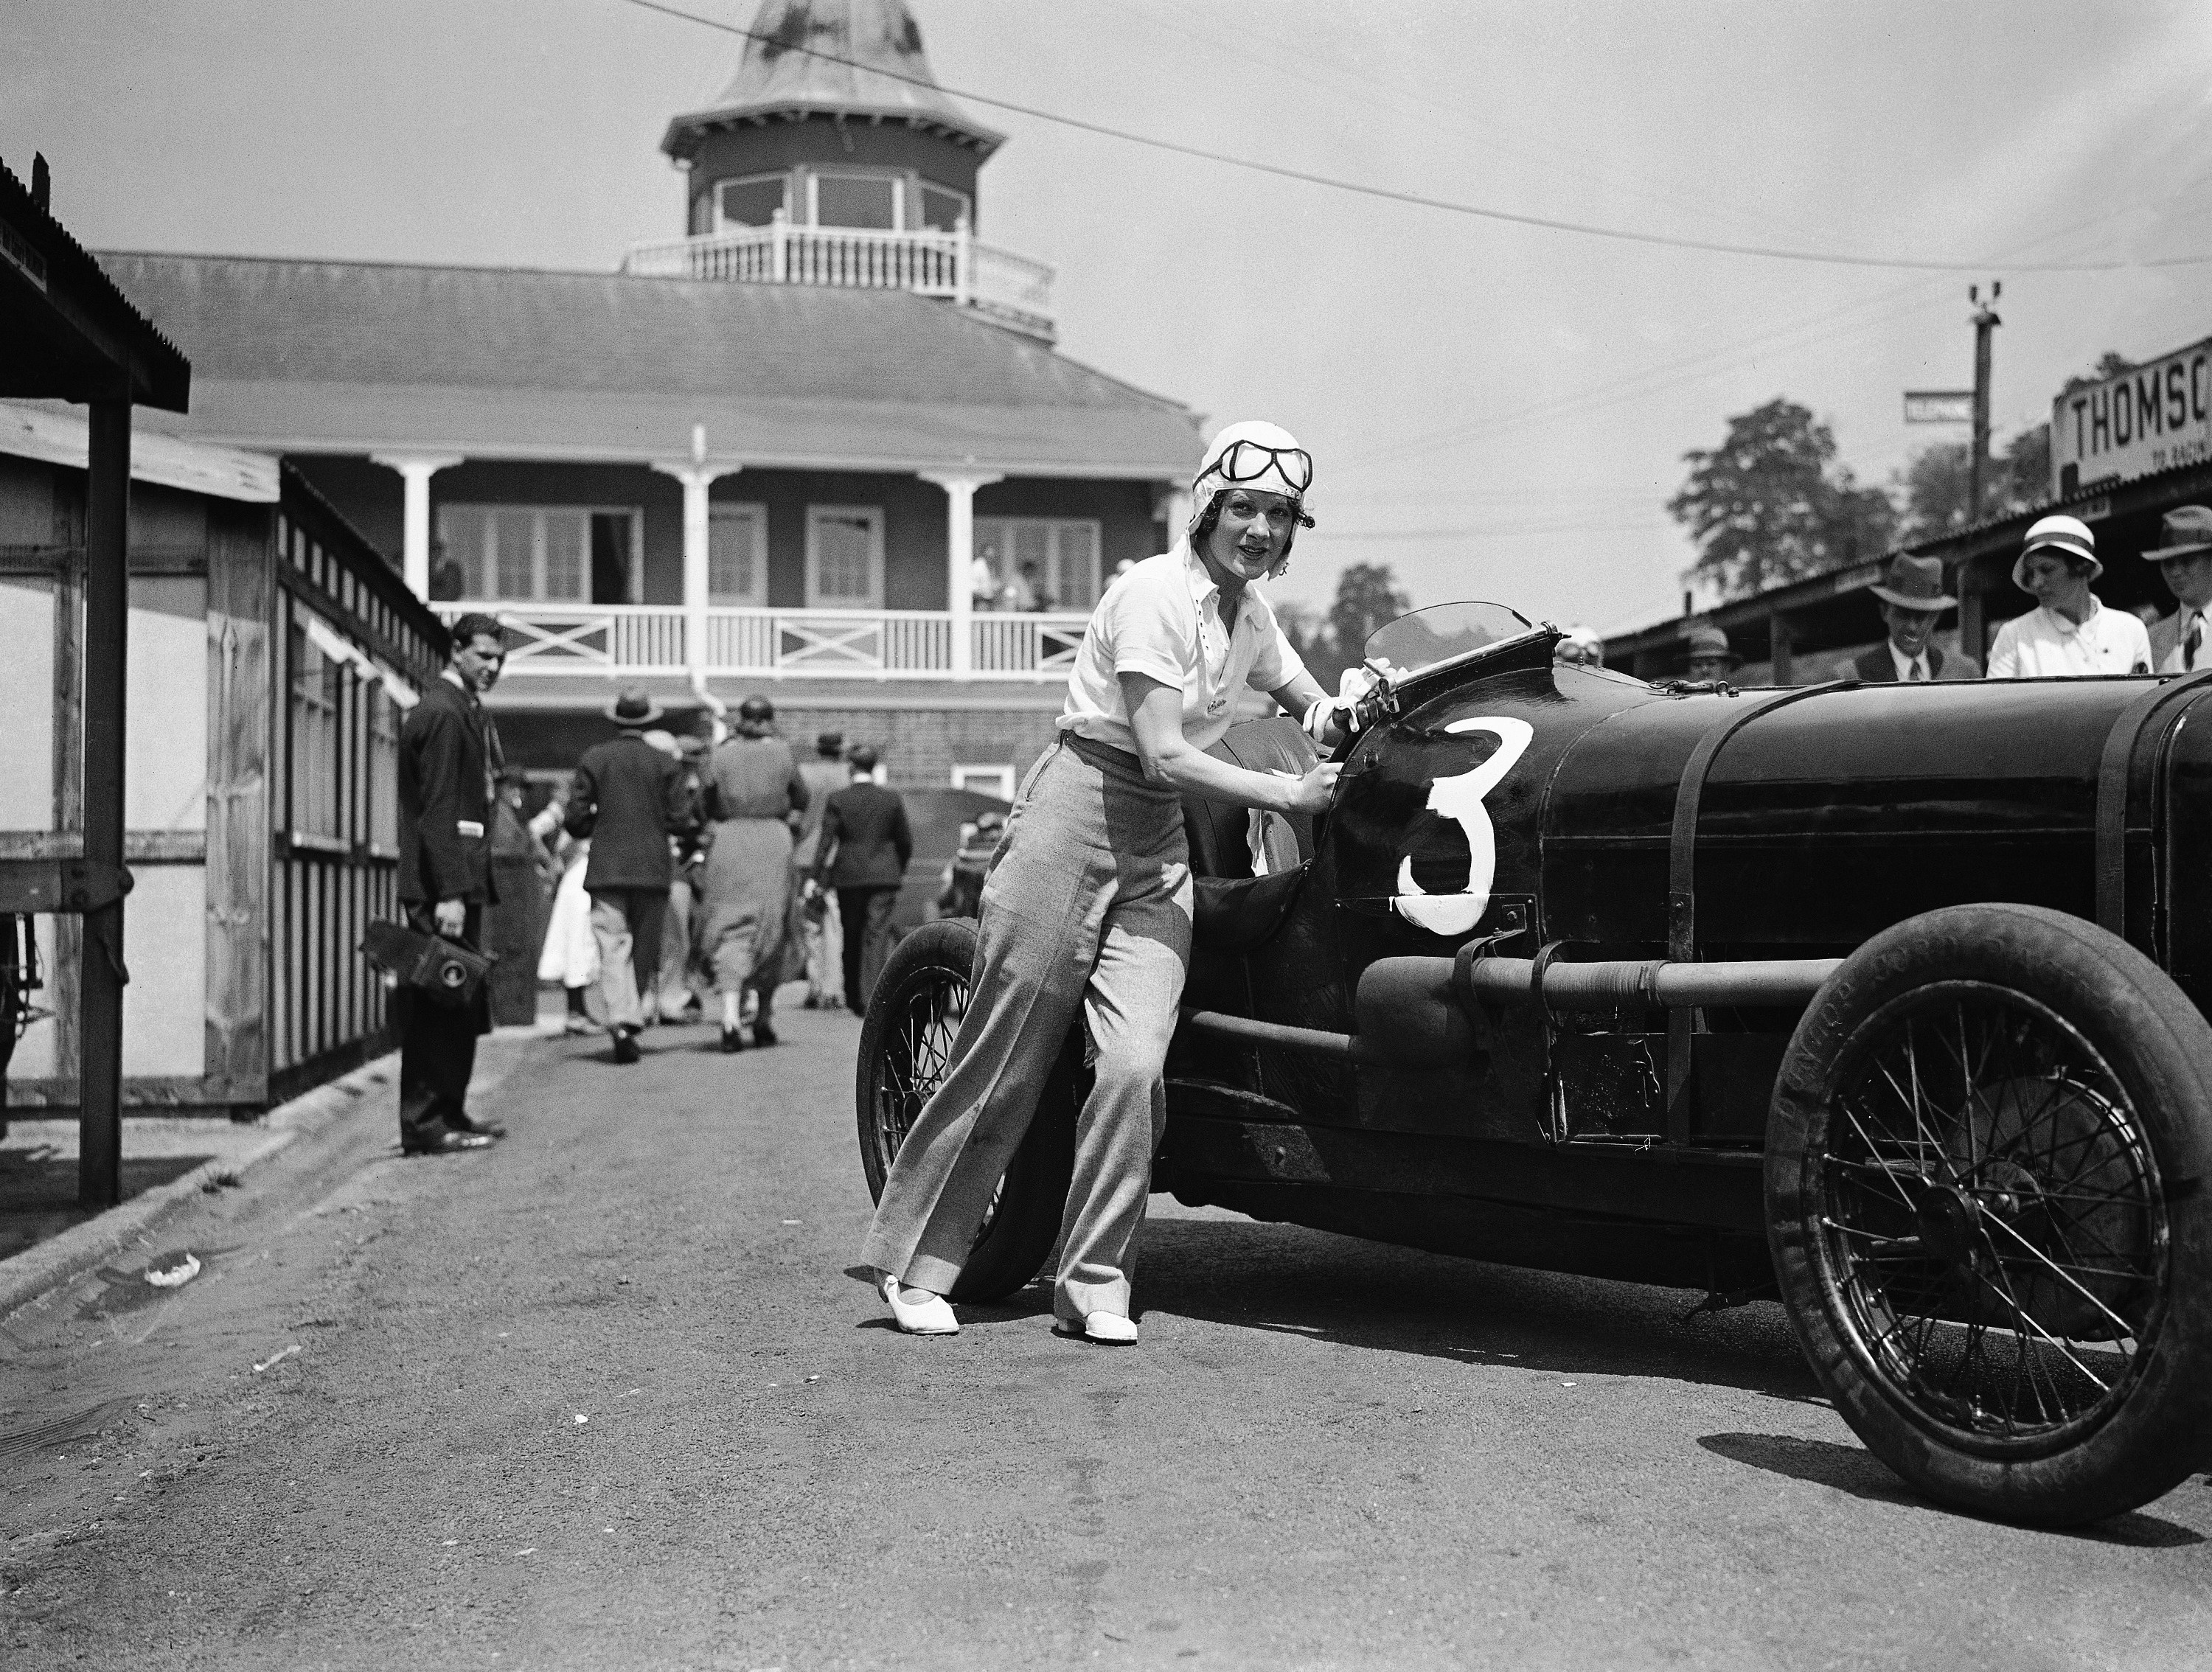 Miss-Paddy-Naismith-pushing-her-car-onto-the-track-for-one-of-the-events-at-Brooklands-England-on-June-5-1933.jpg